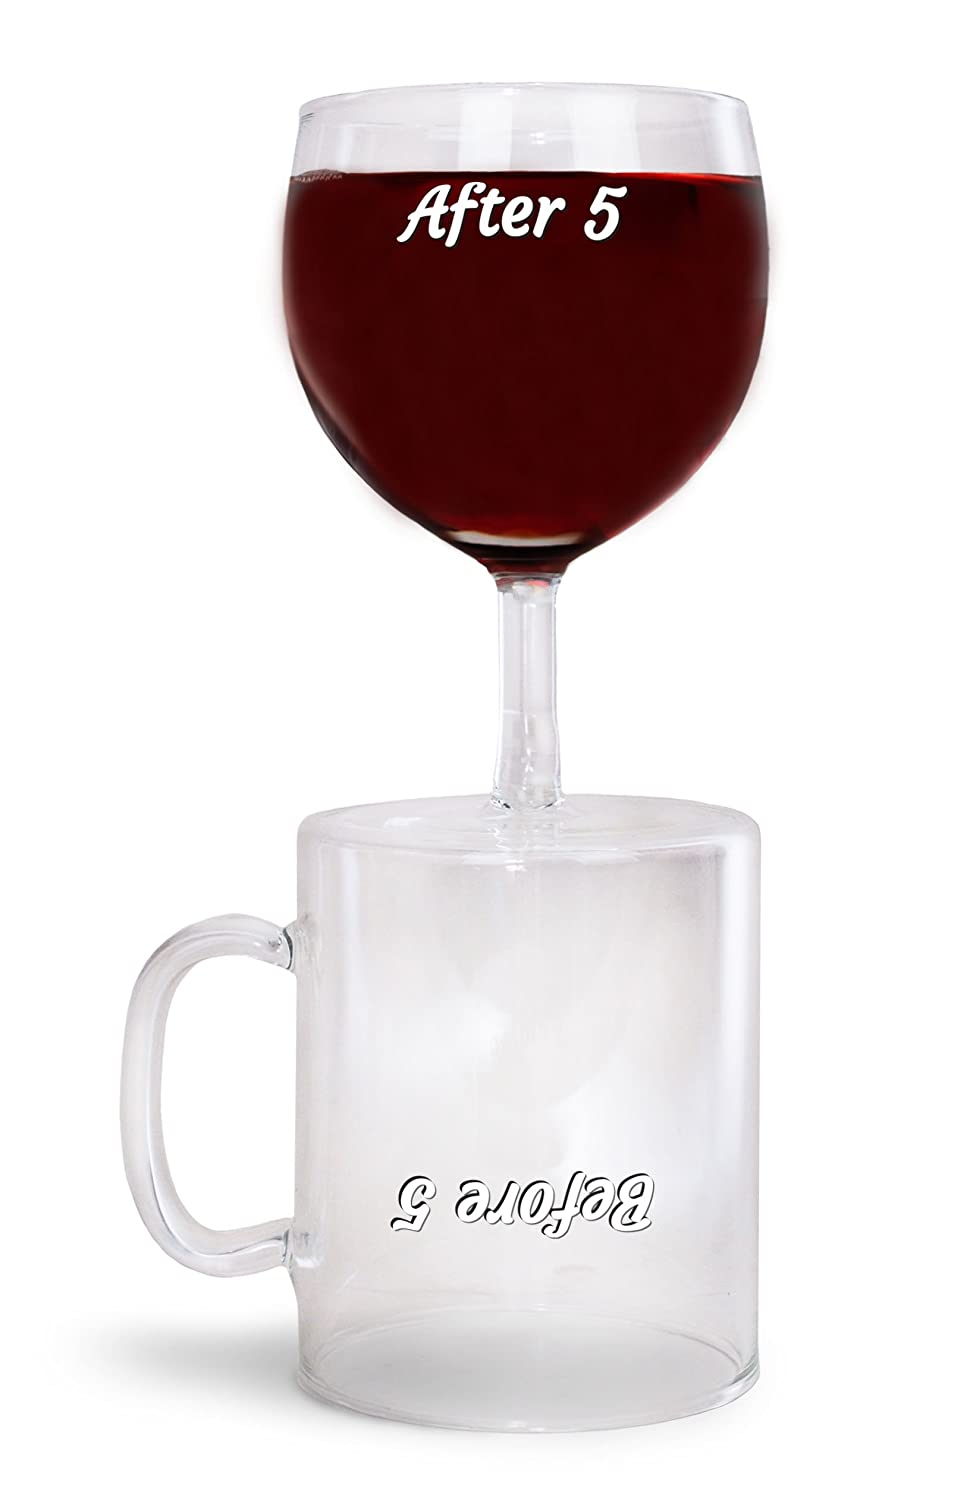 BigMouth Inc Funny Novelty Dual Wine Glass and Coffee Cup - After 5 for Wine